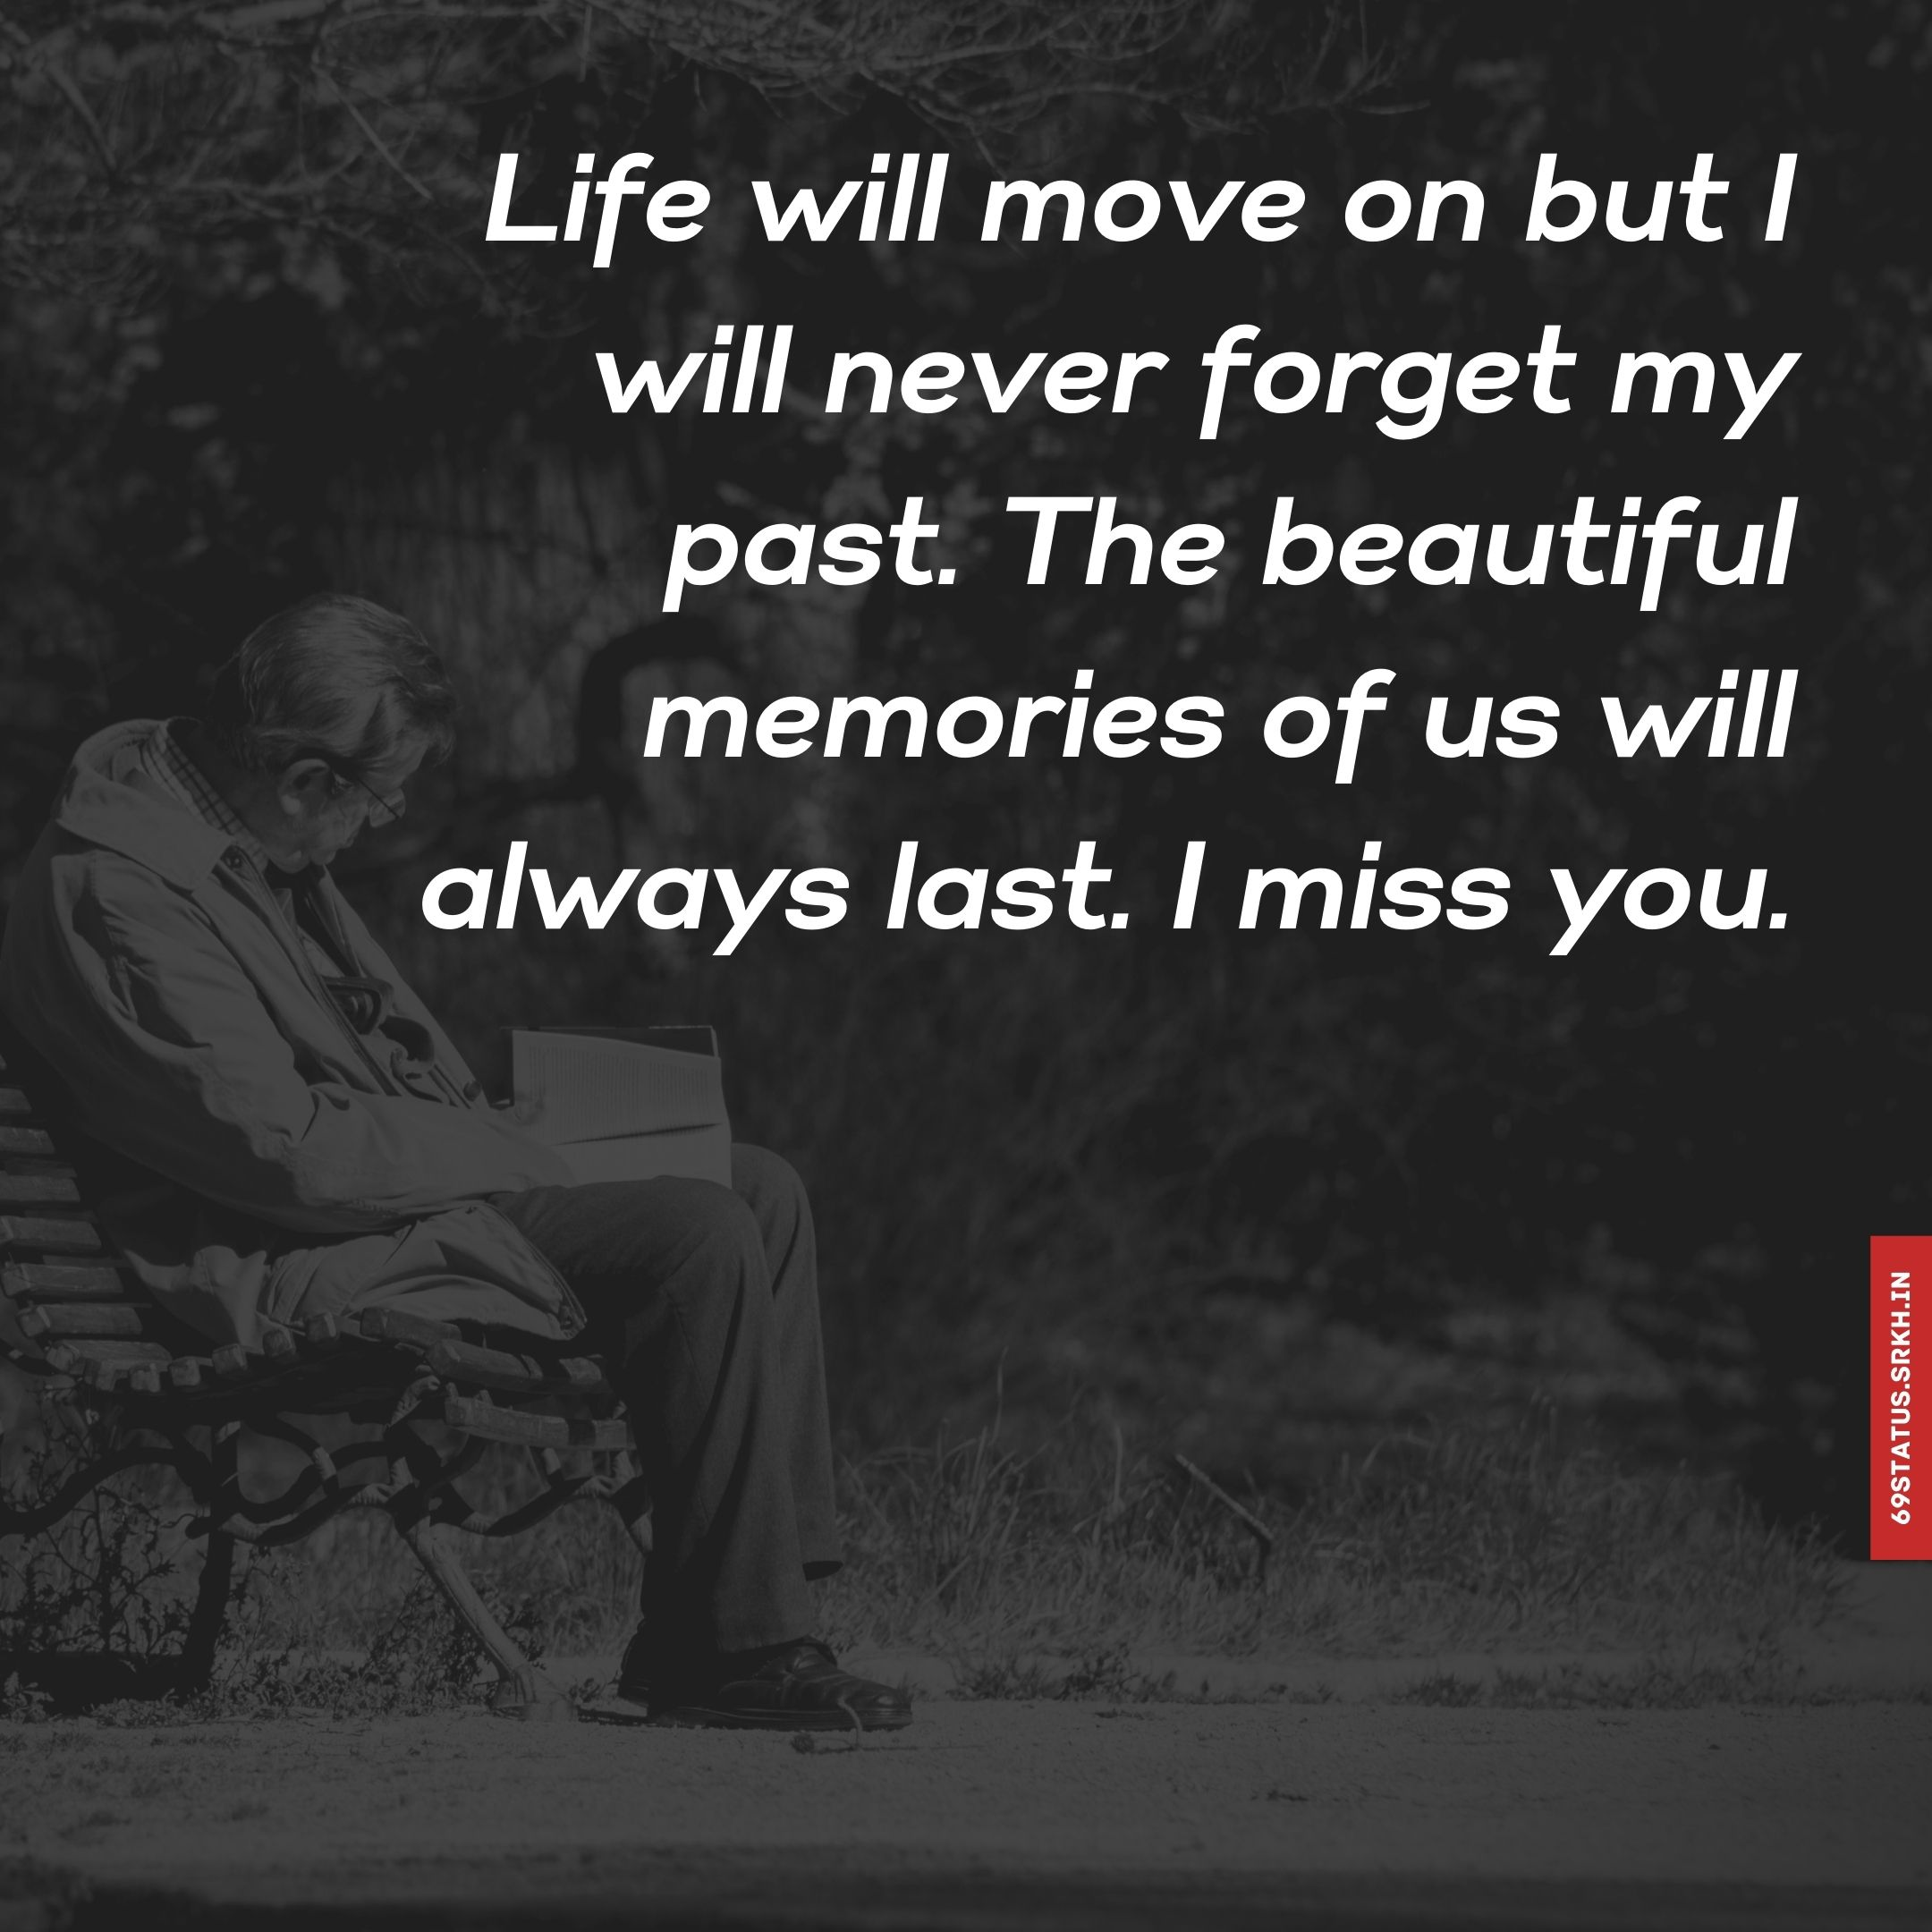 Miss you quotes in hindi with images full HD free download.